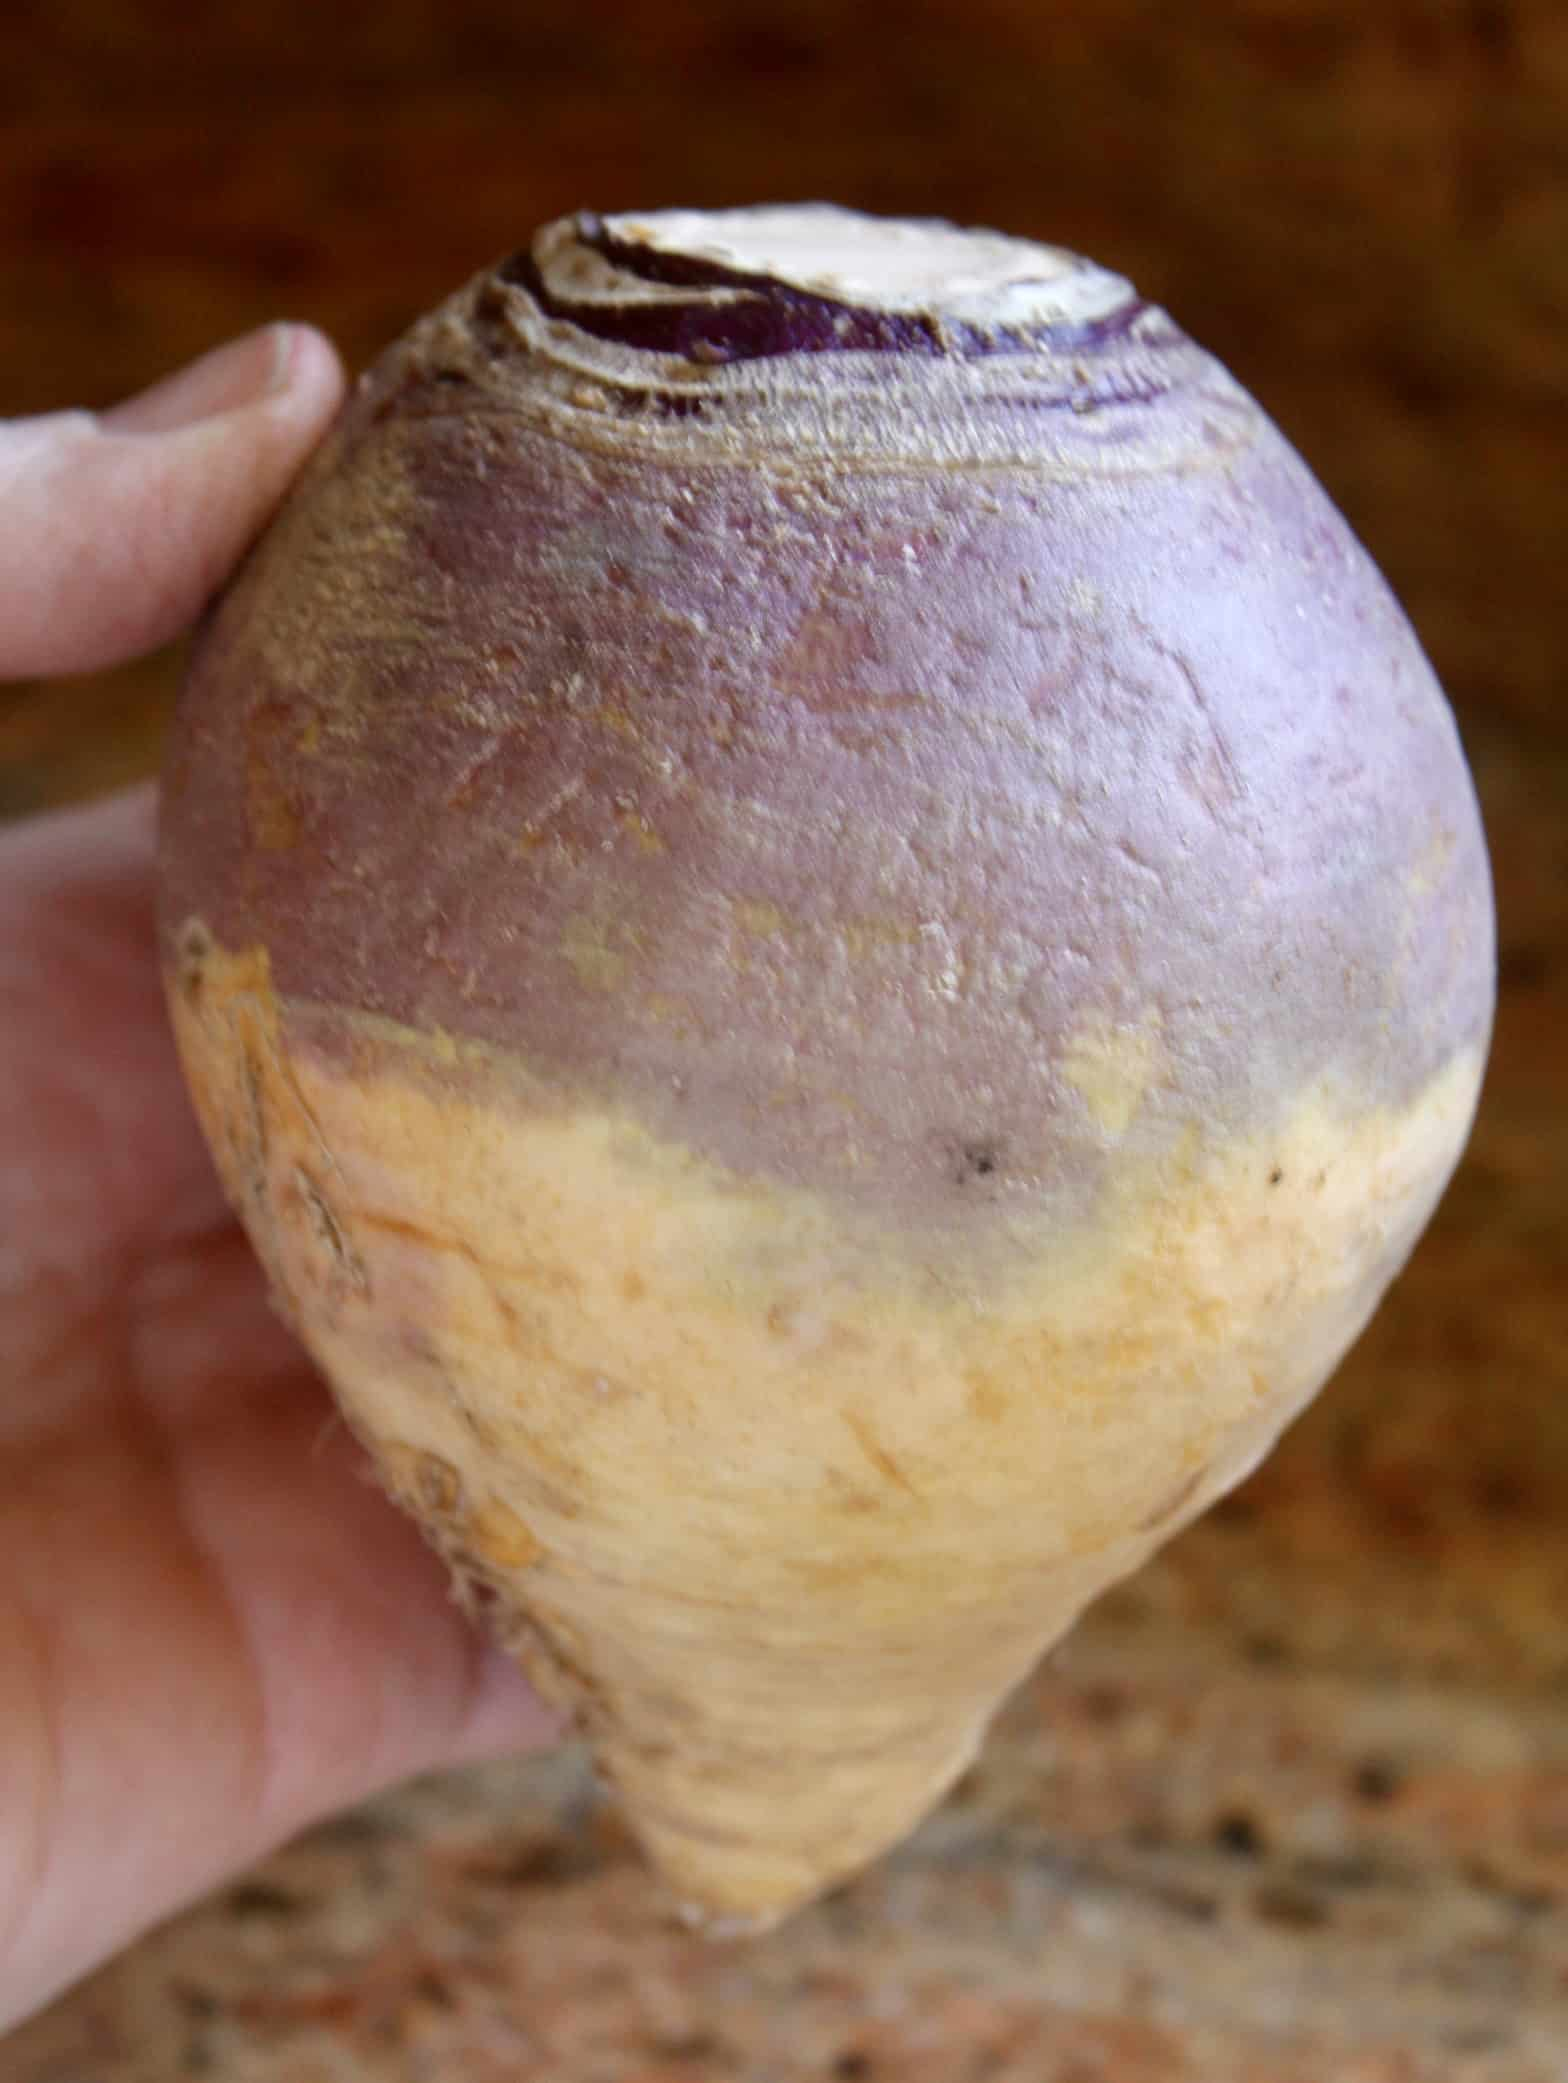 a typical rutabaga/swede